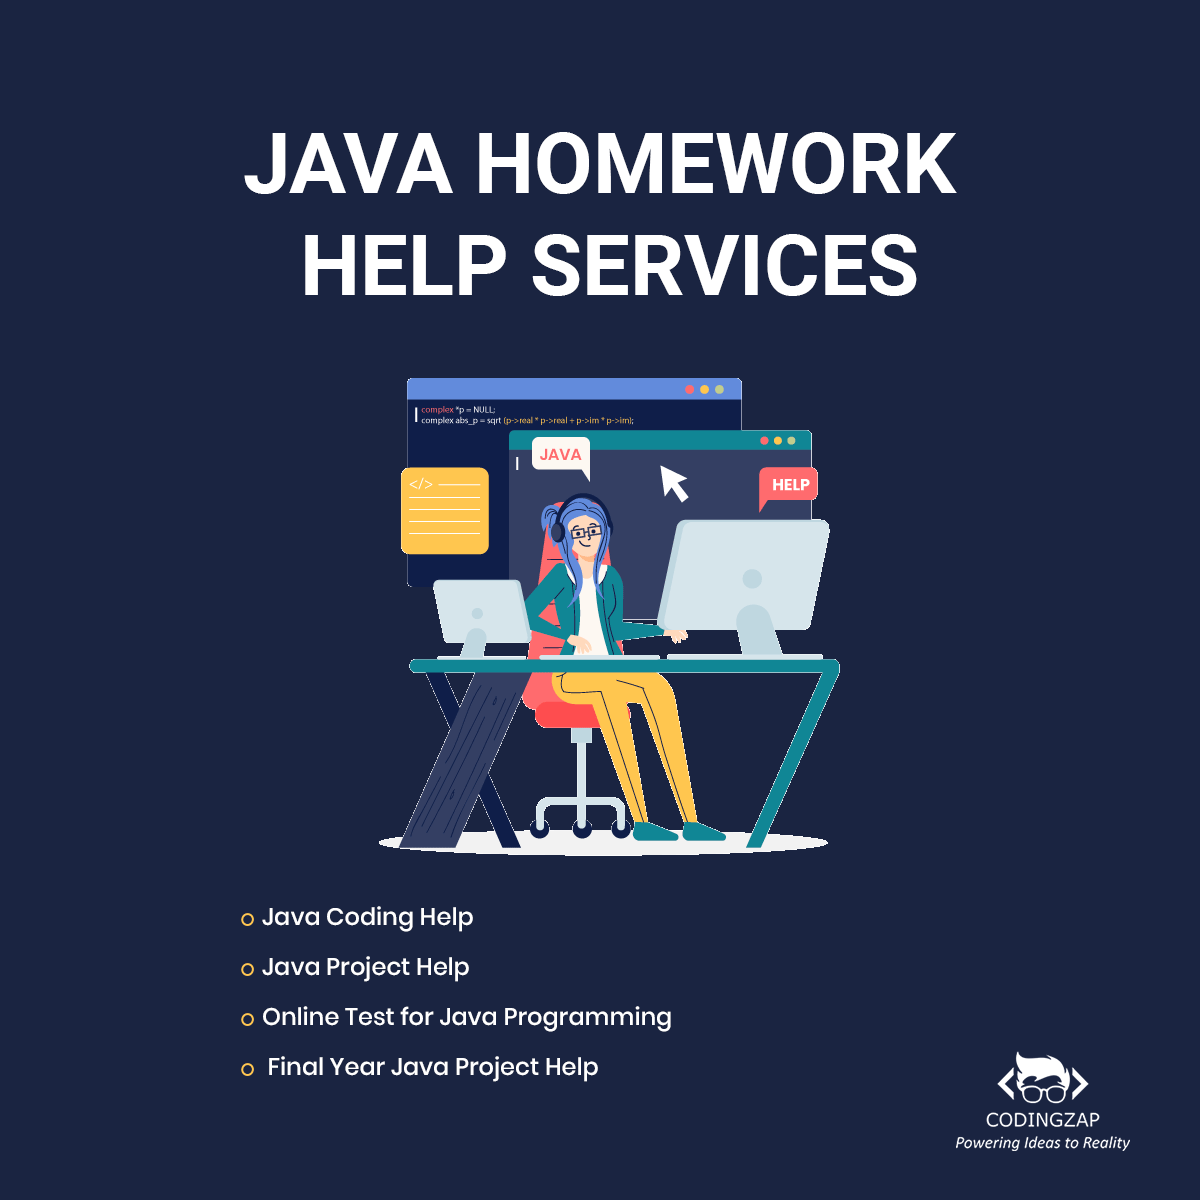 Java Homework Help Services